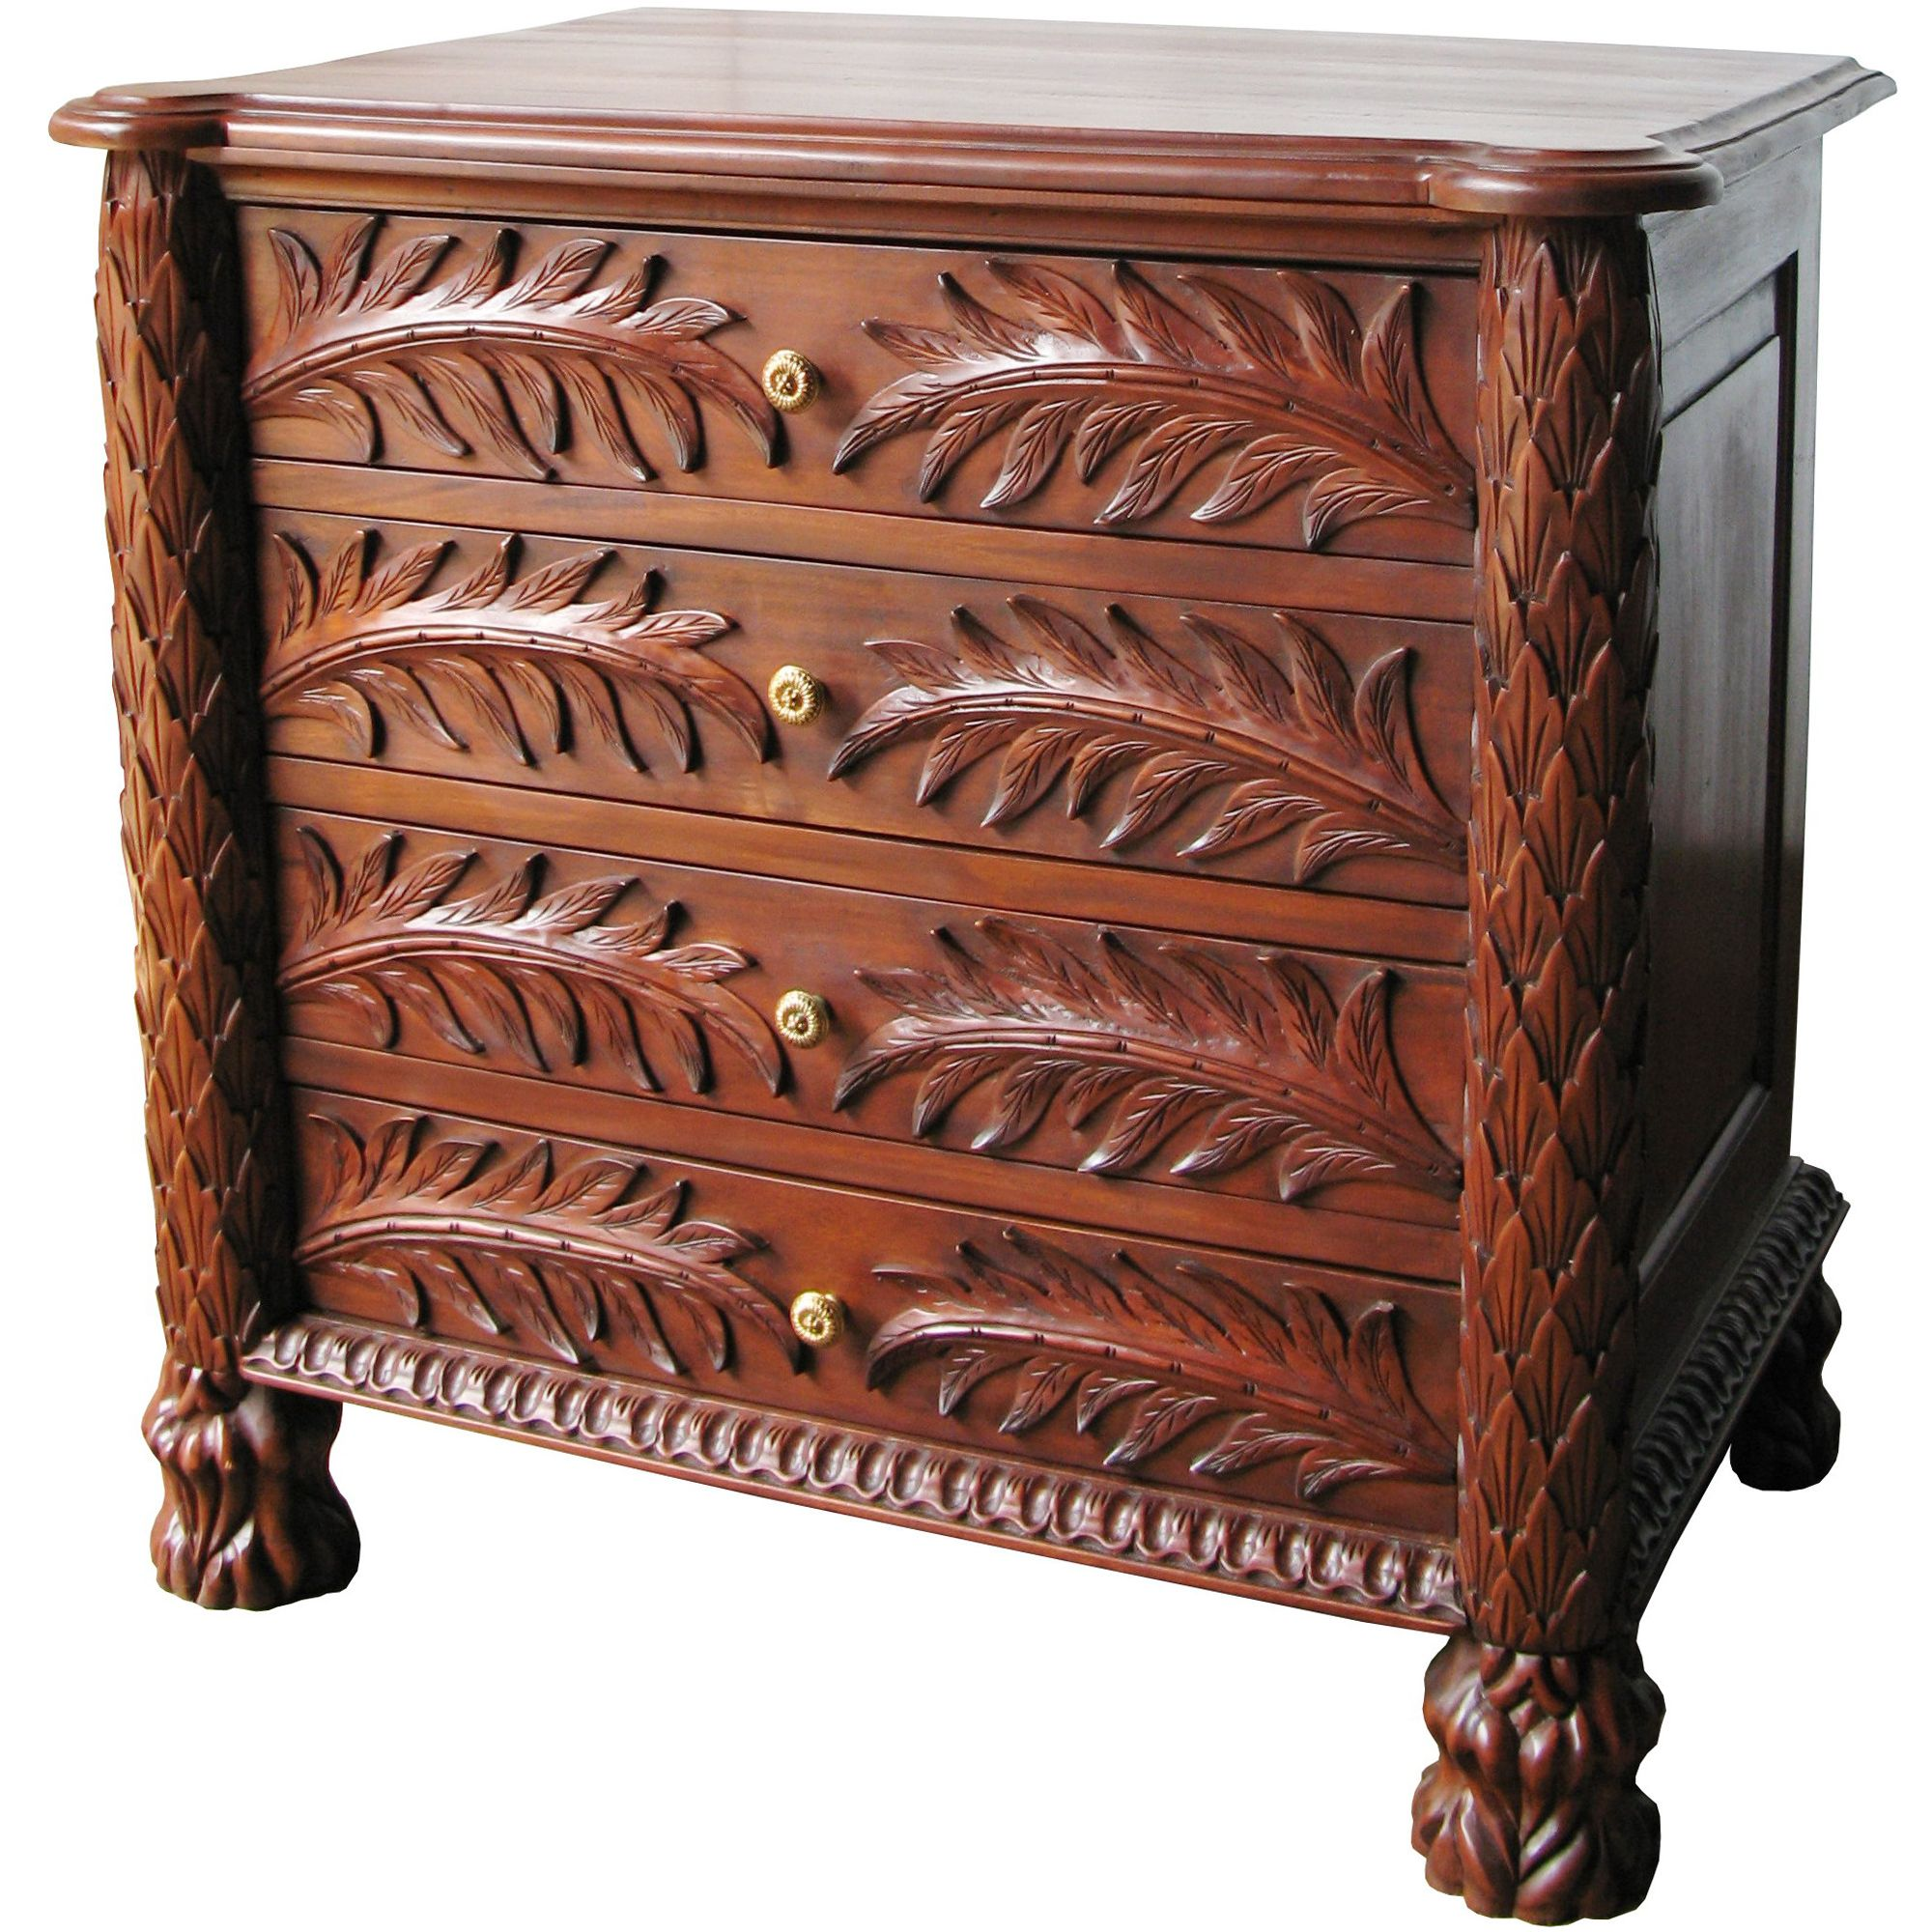 Lock stock and barrel Mahogany 4 Drawer Palm Chest - Wax at Tesco Direct